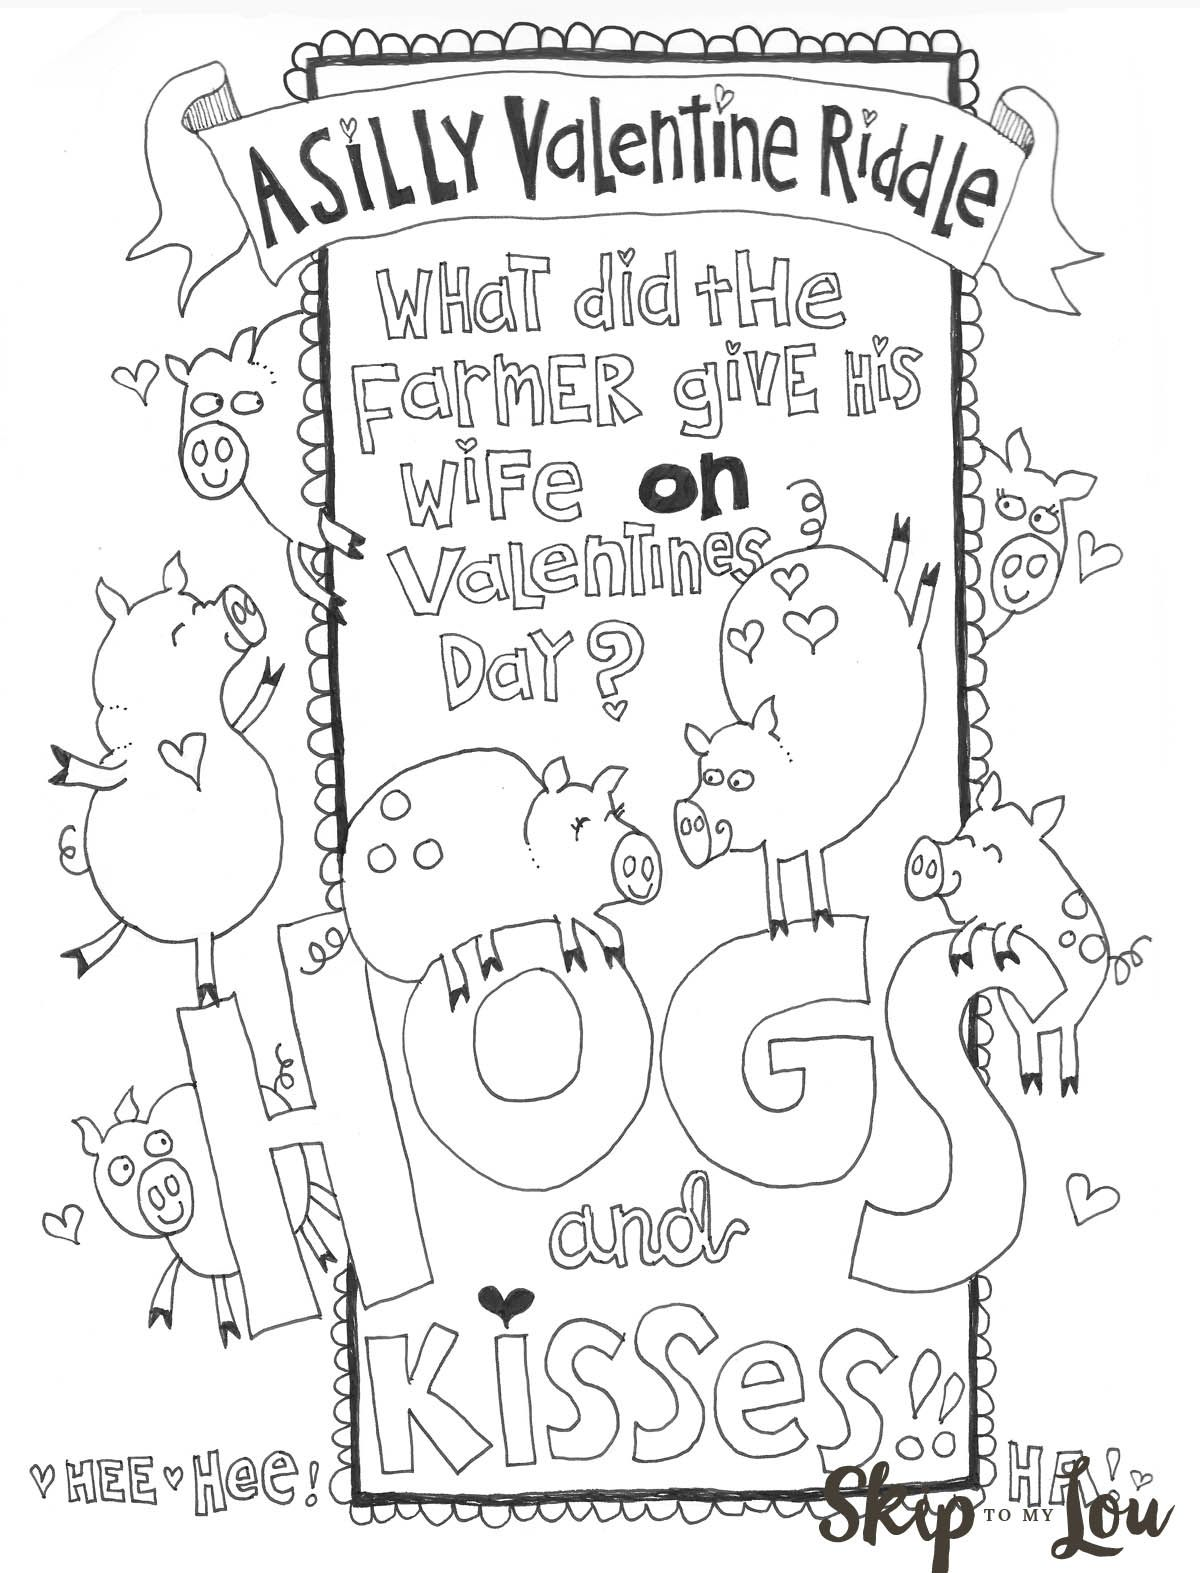 deery lou coloring pages - photo#15